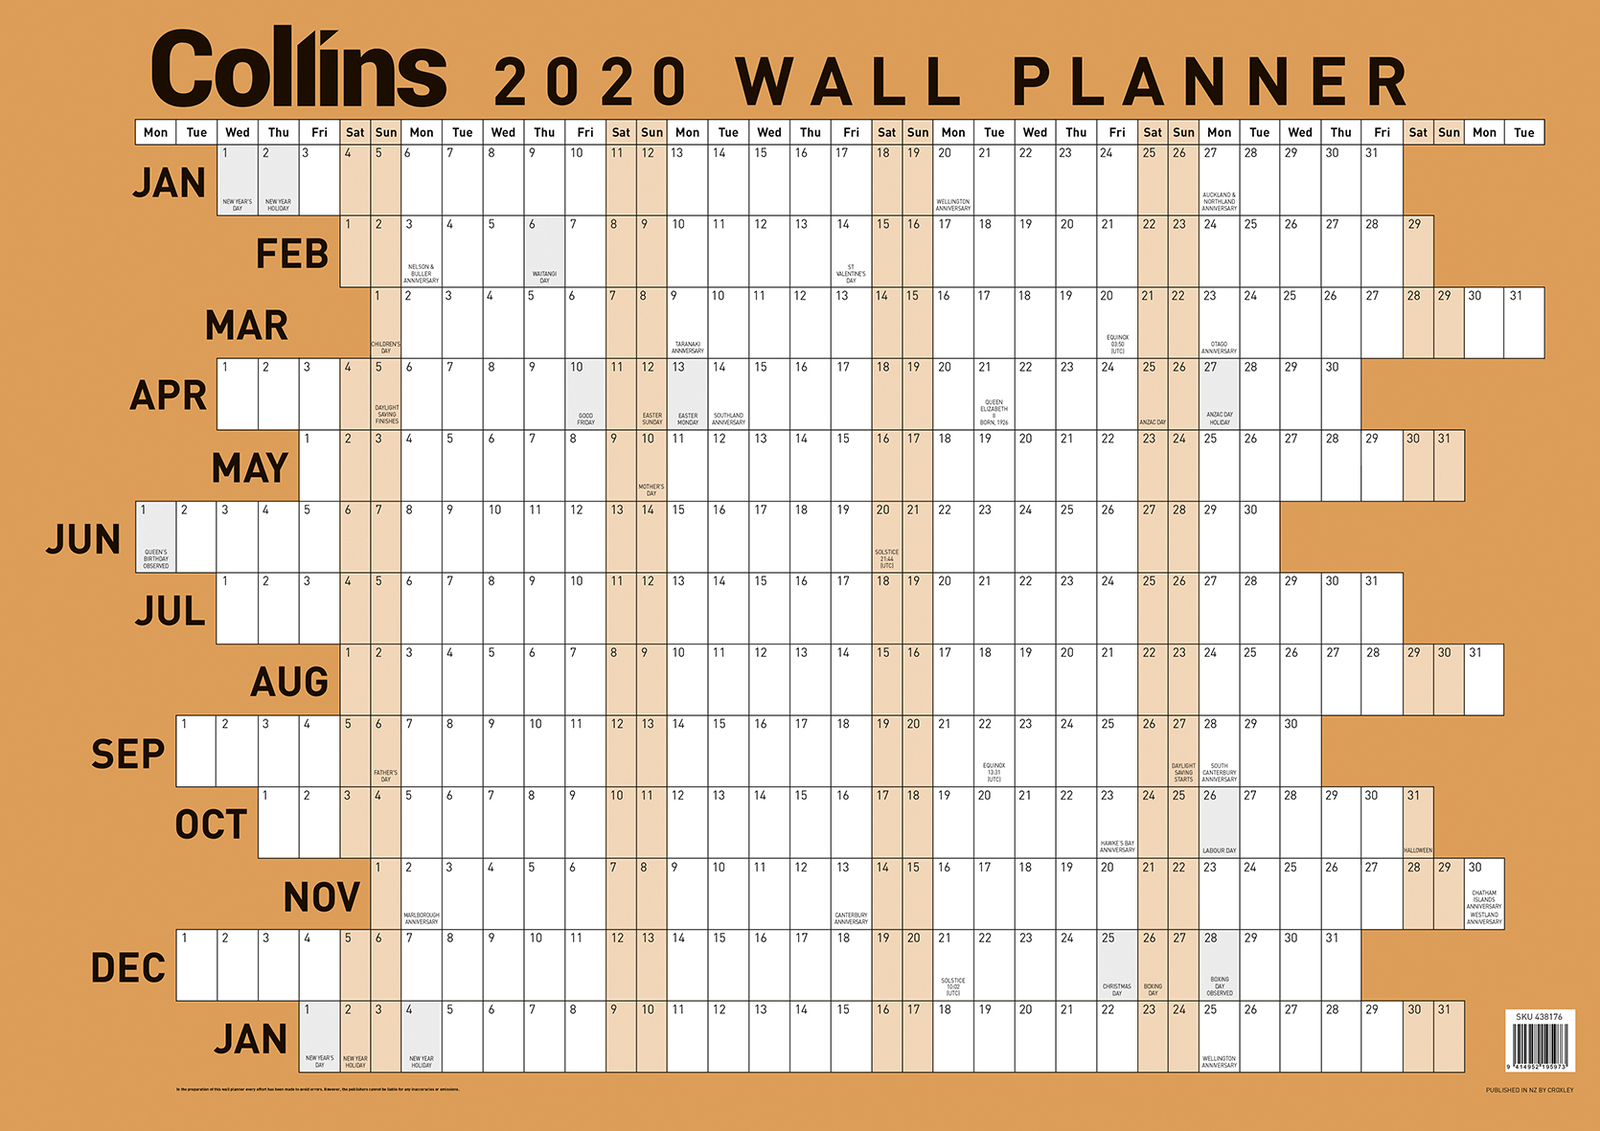 Collins: 2020 Laminated A2 Wall Planner image